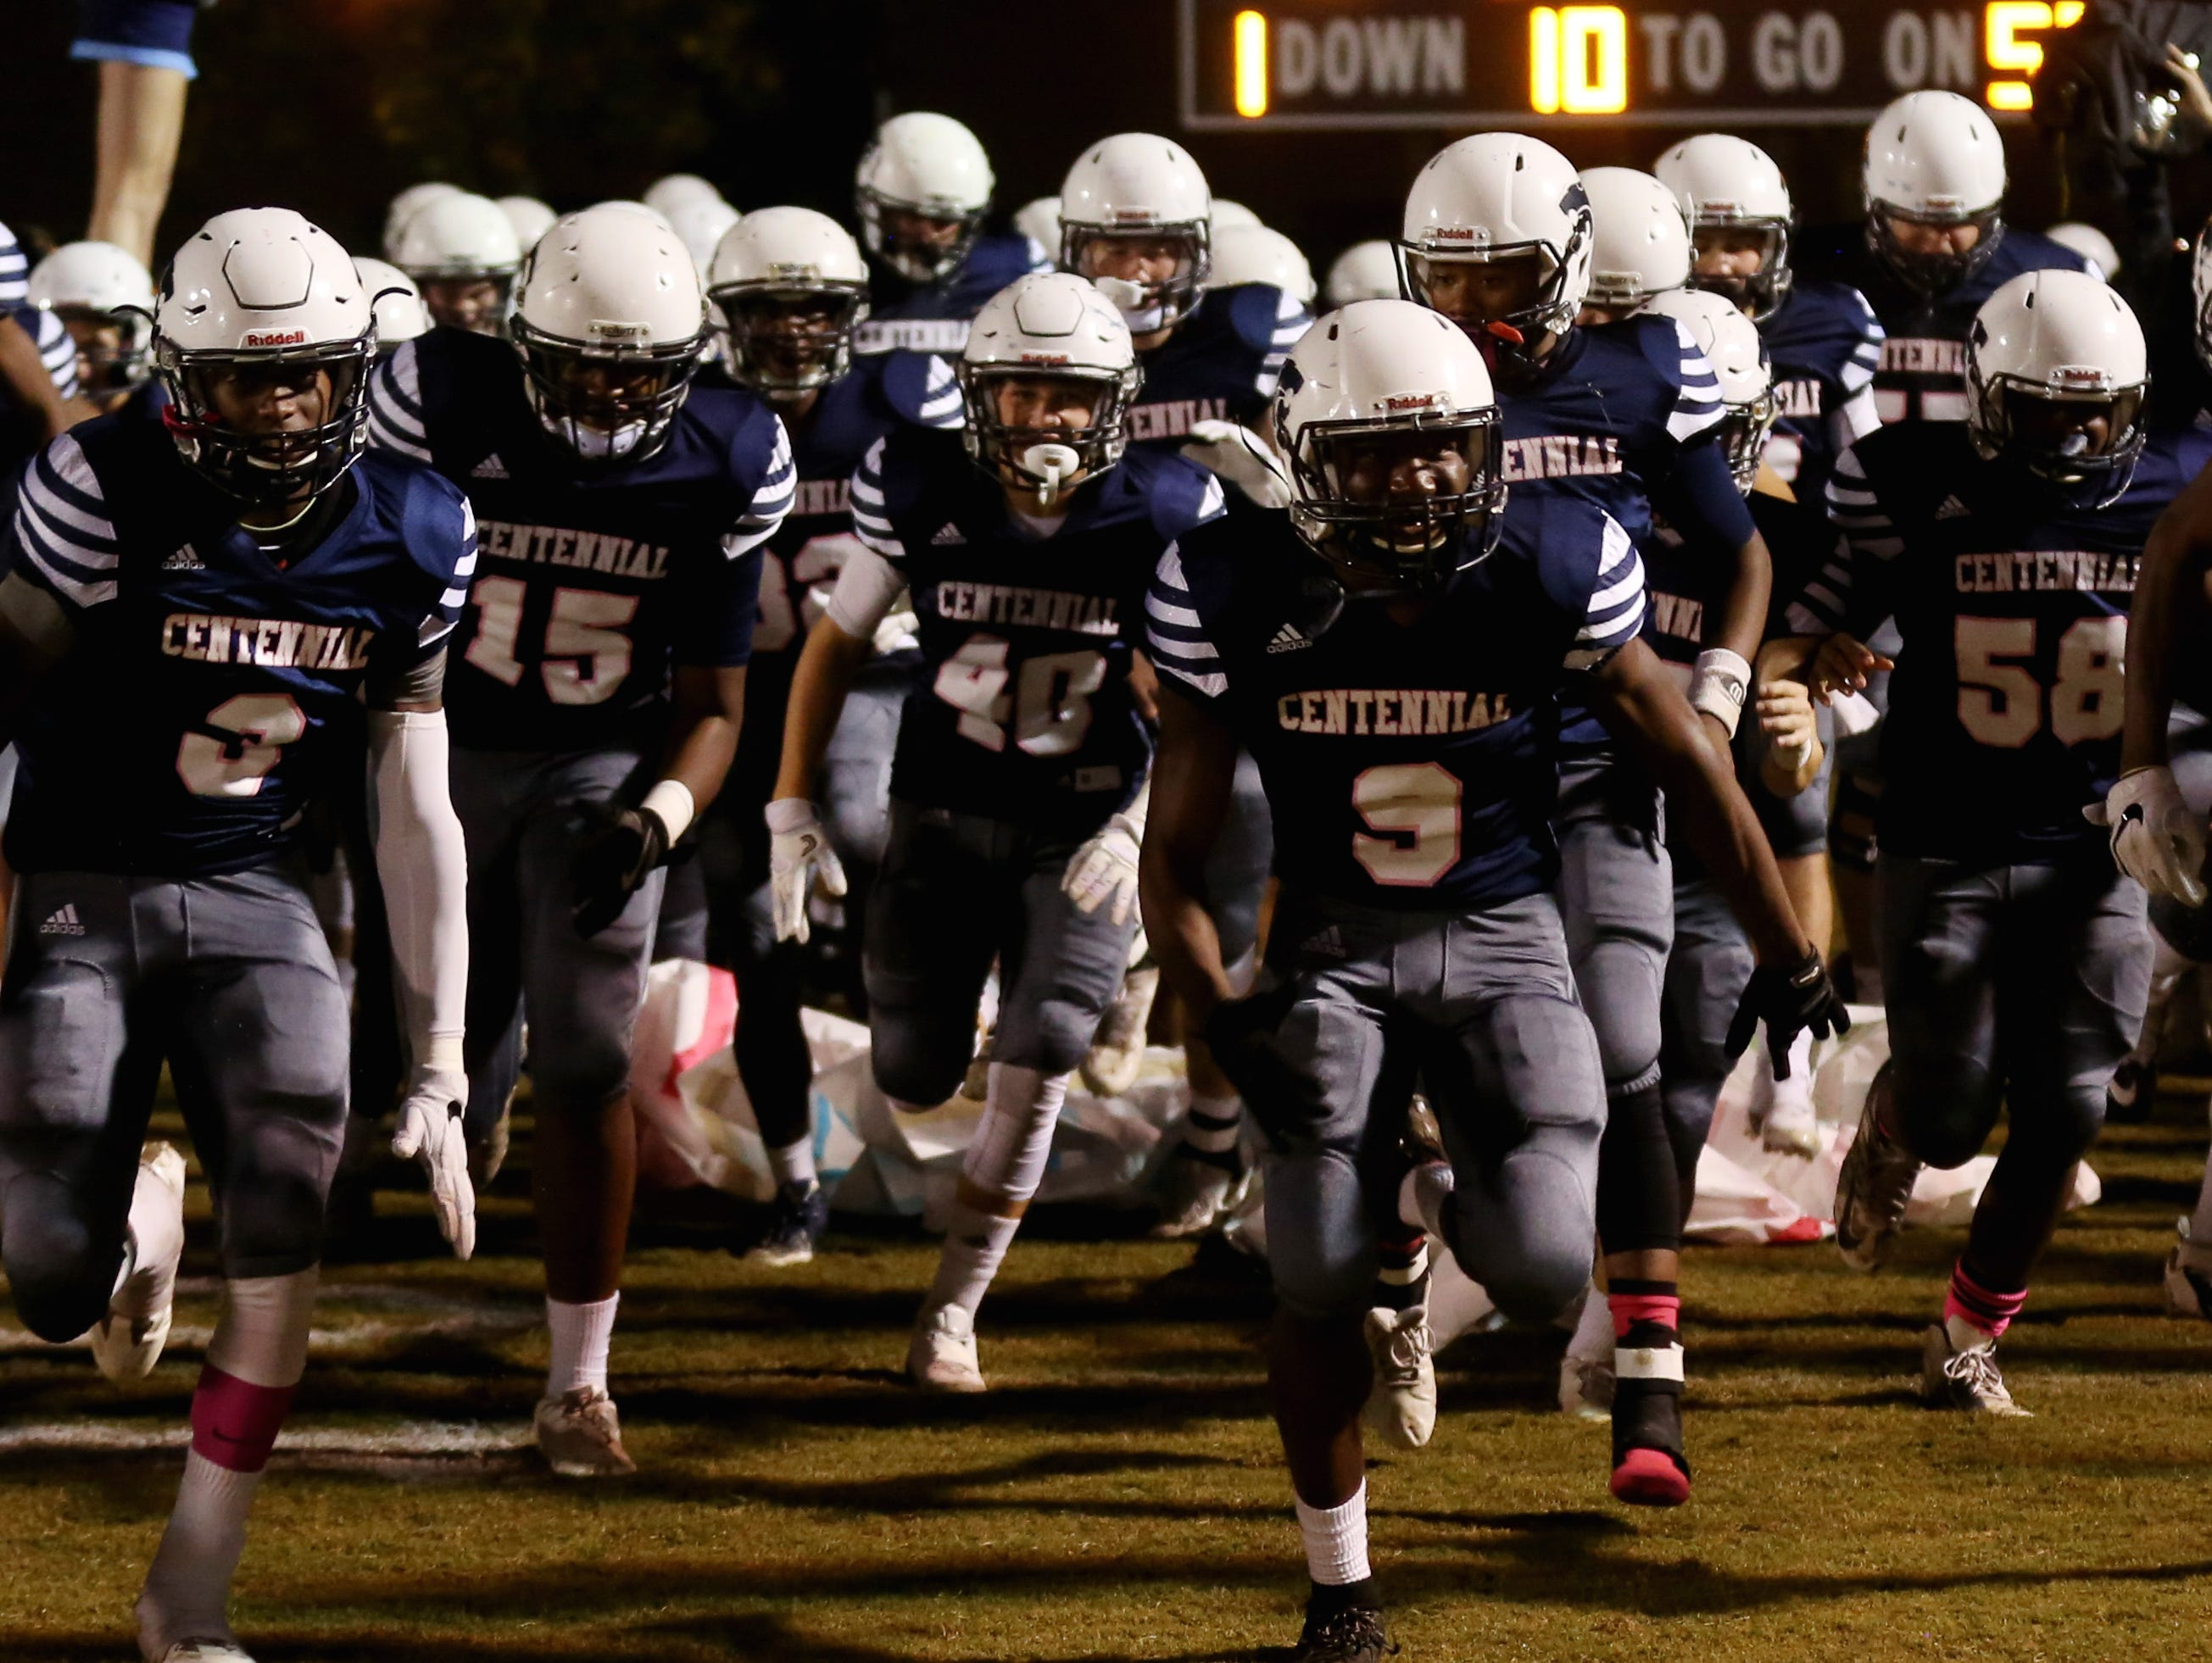 Centennial football players run onto the filed for their homegame against Brentwood Friday October 14, 2016.